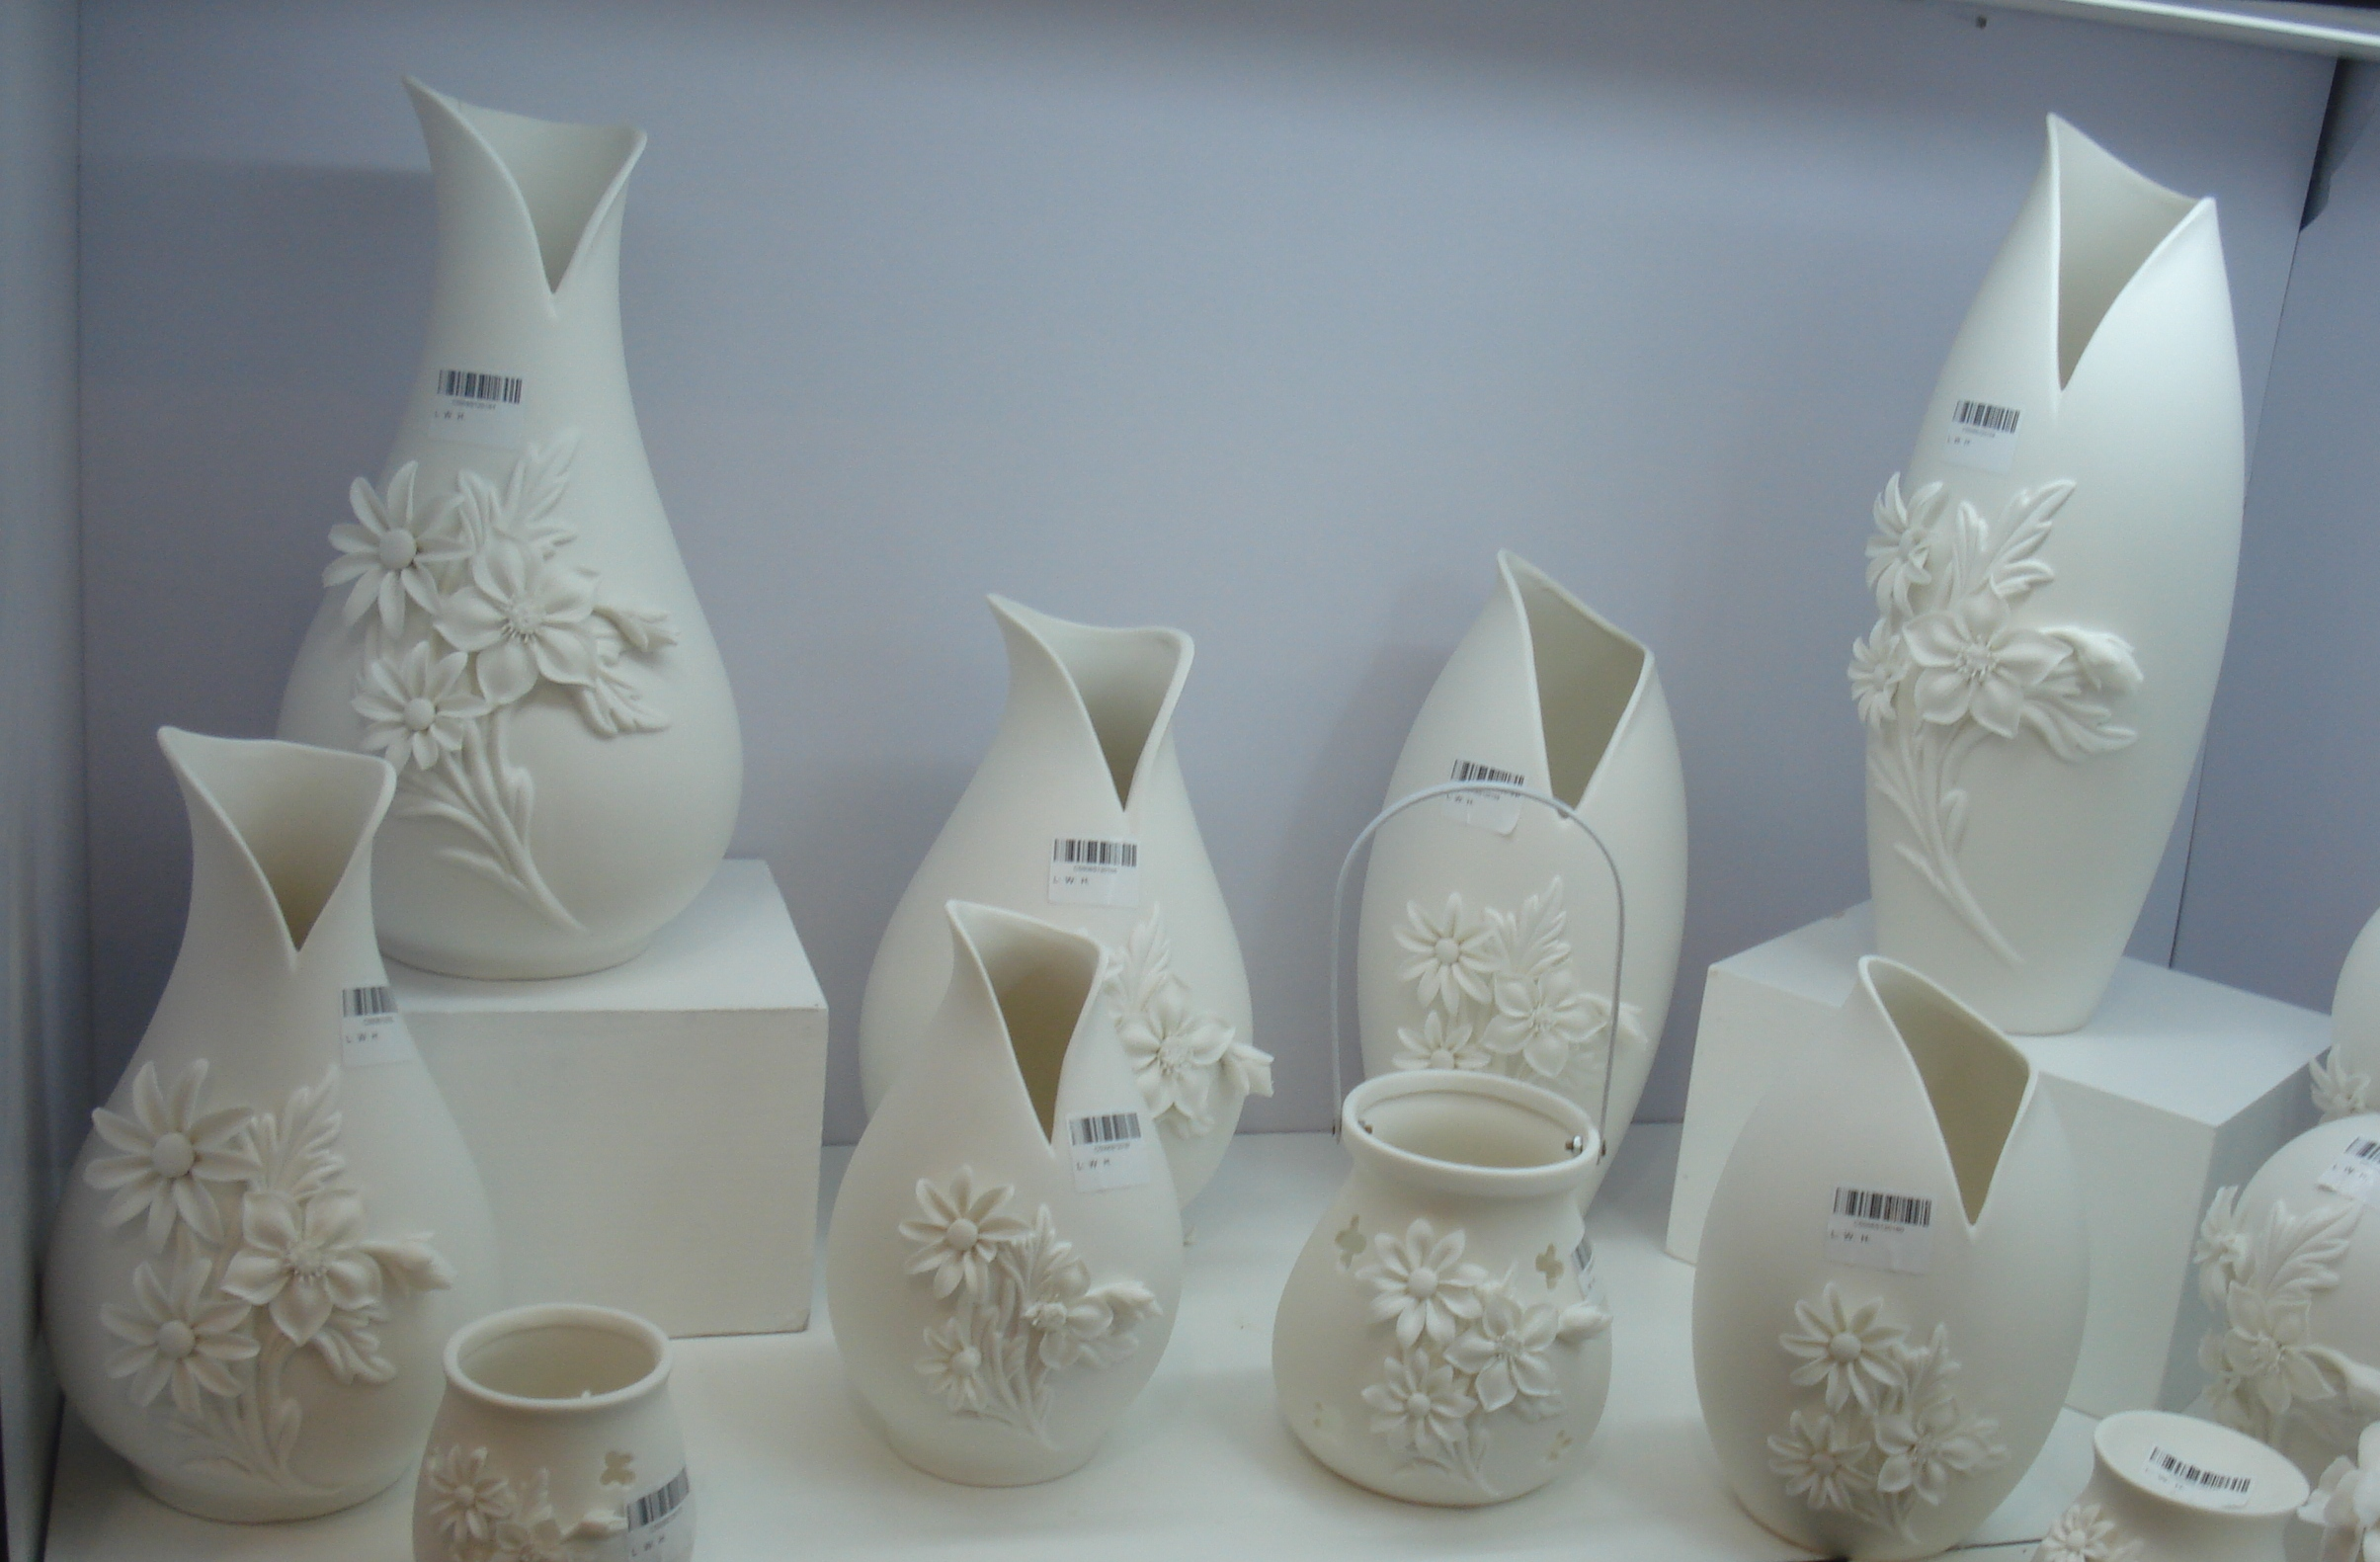 Ceramic Flower C Shenzhen S A Ceramic Science And